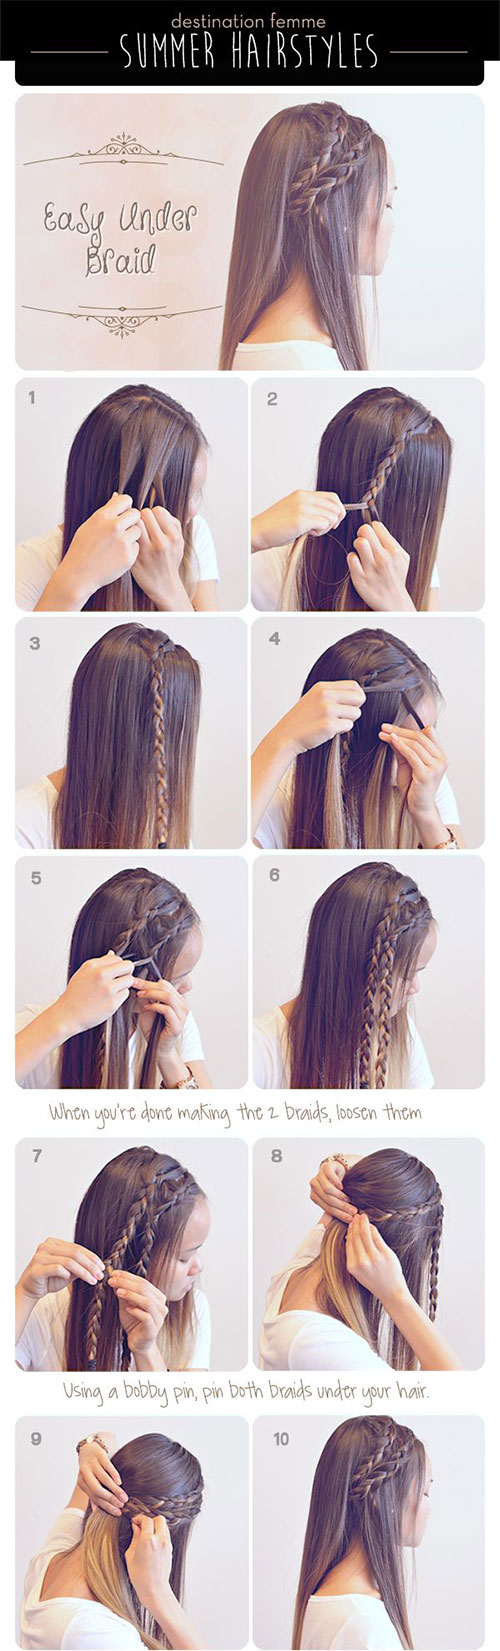 15 step by step summer hairstyle tutorials for beginners